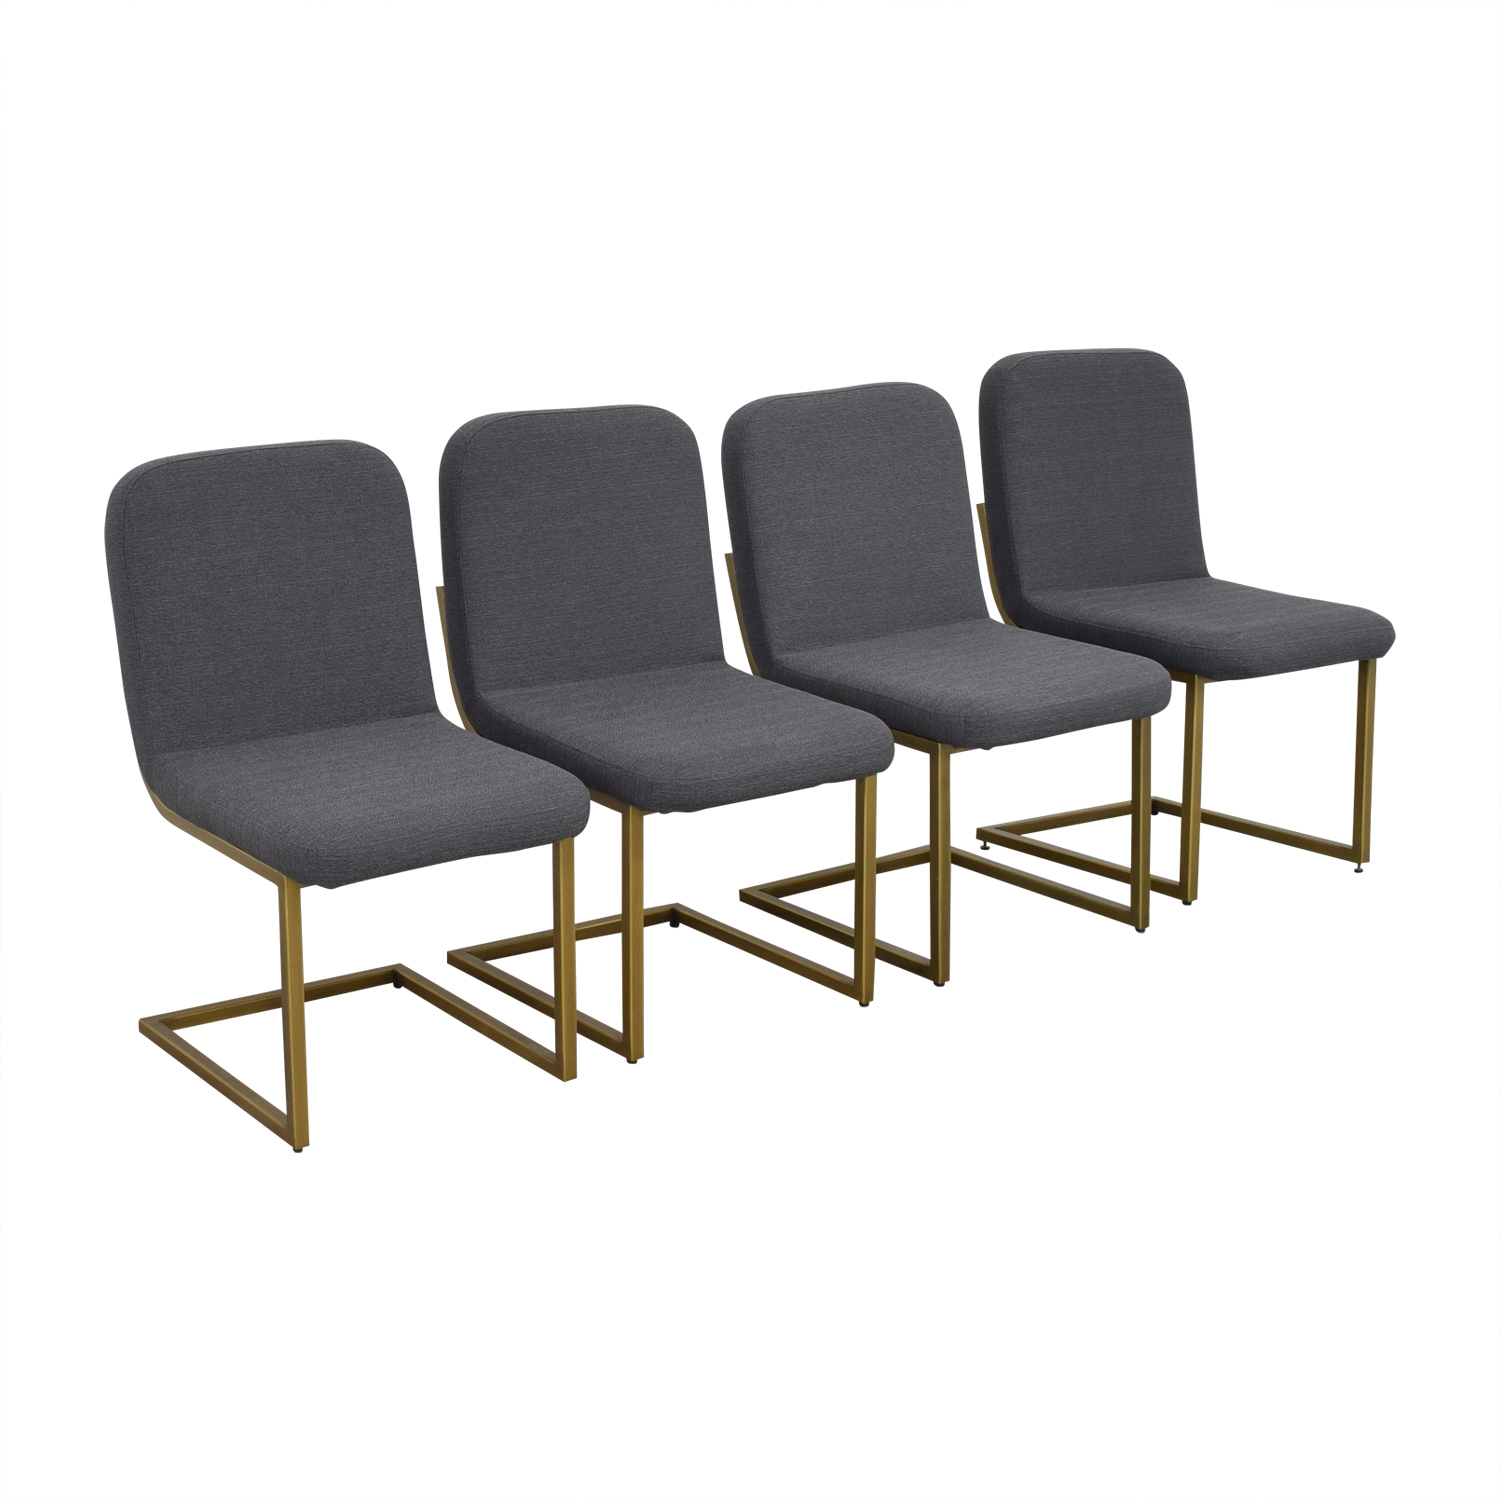 Article Article Alchemy Dining Chairs price